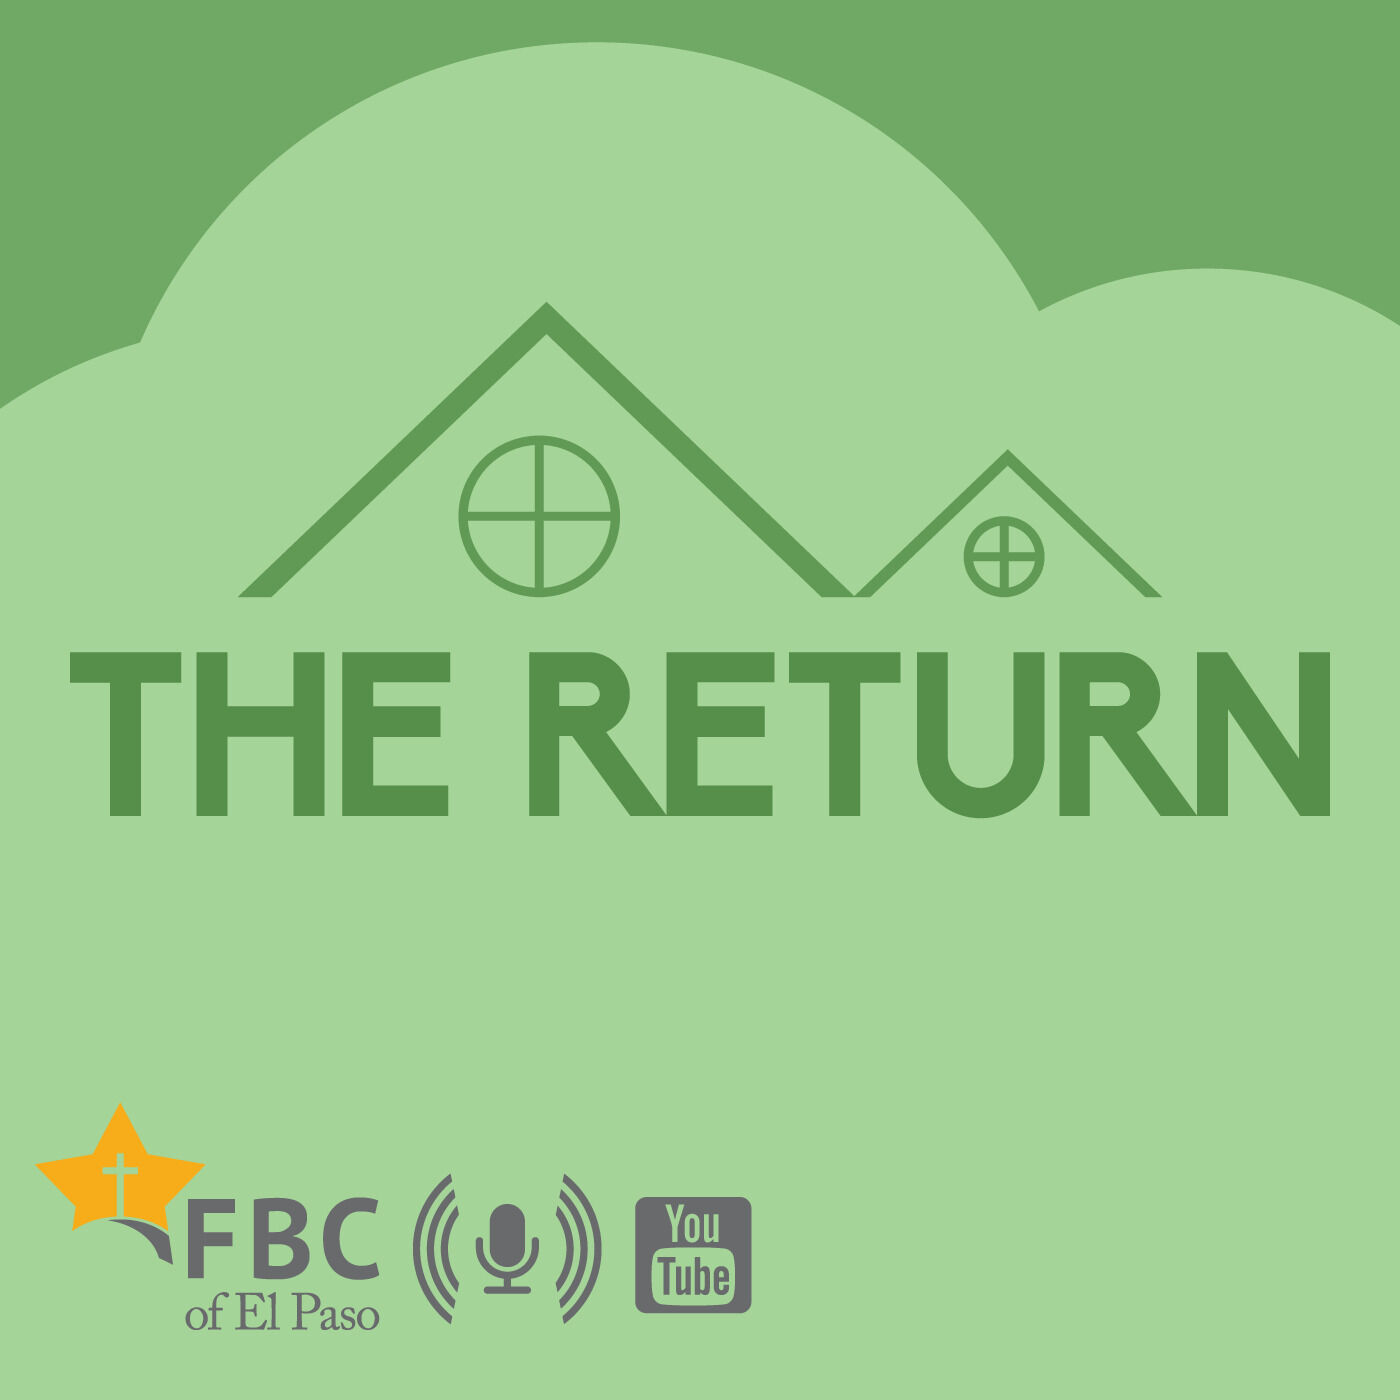 The Return: Road Trip (June 28, 2020)